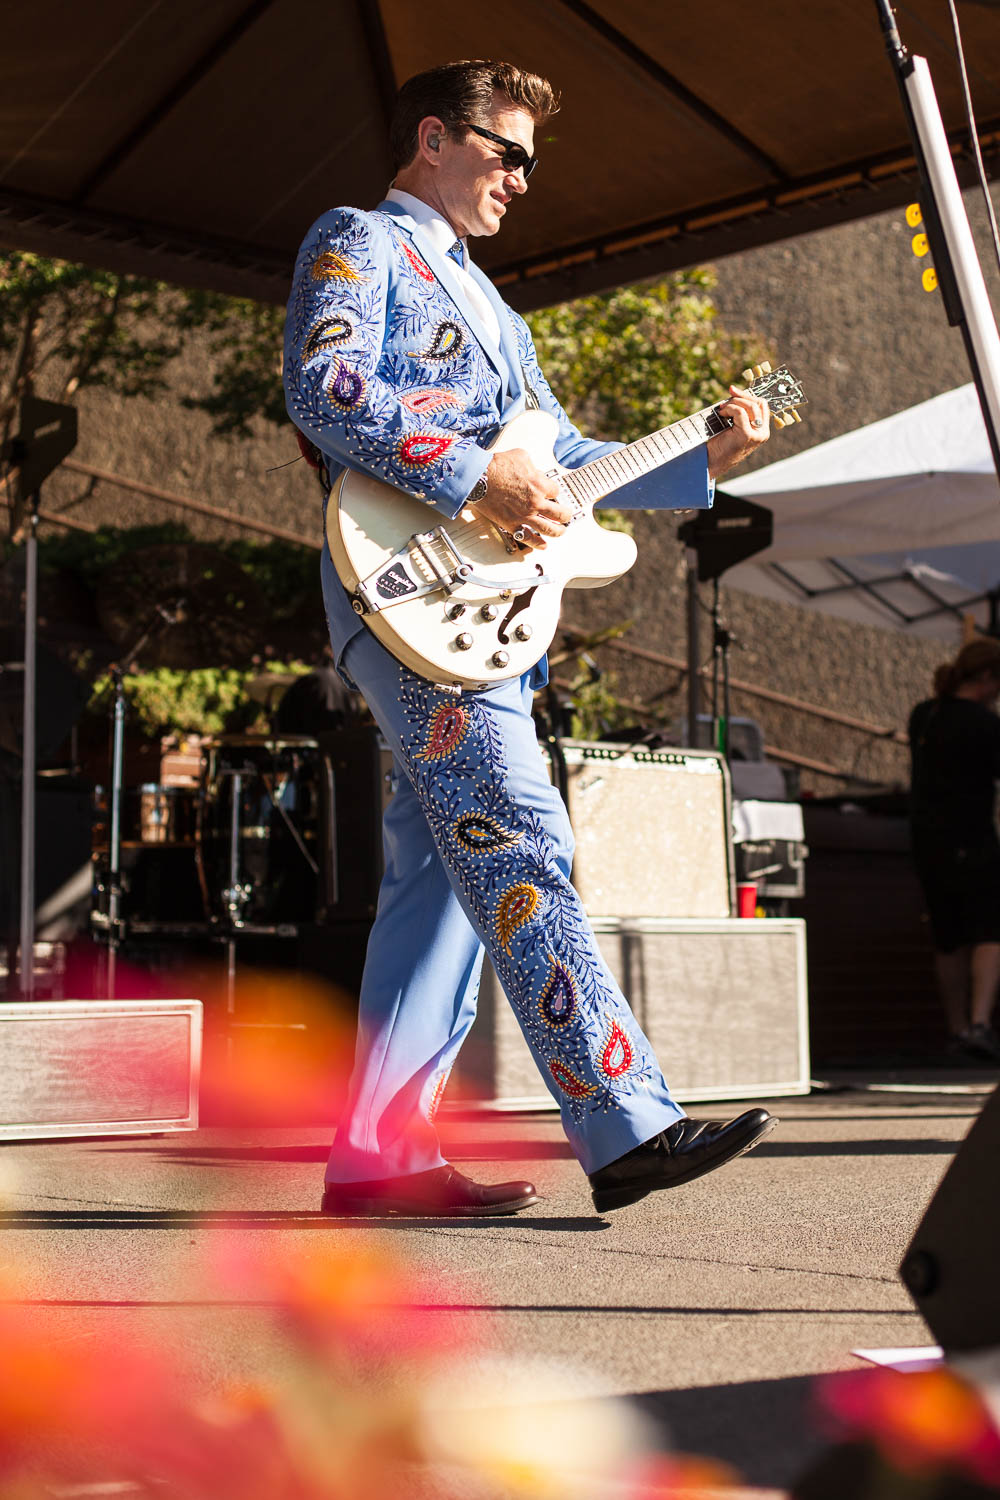 Rodney Strong Concerts 2014 2 Chris Isaak-9218.jpg